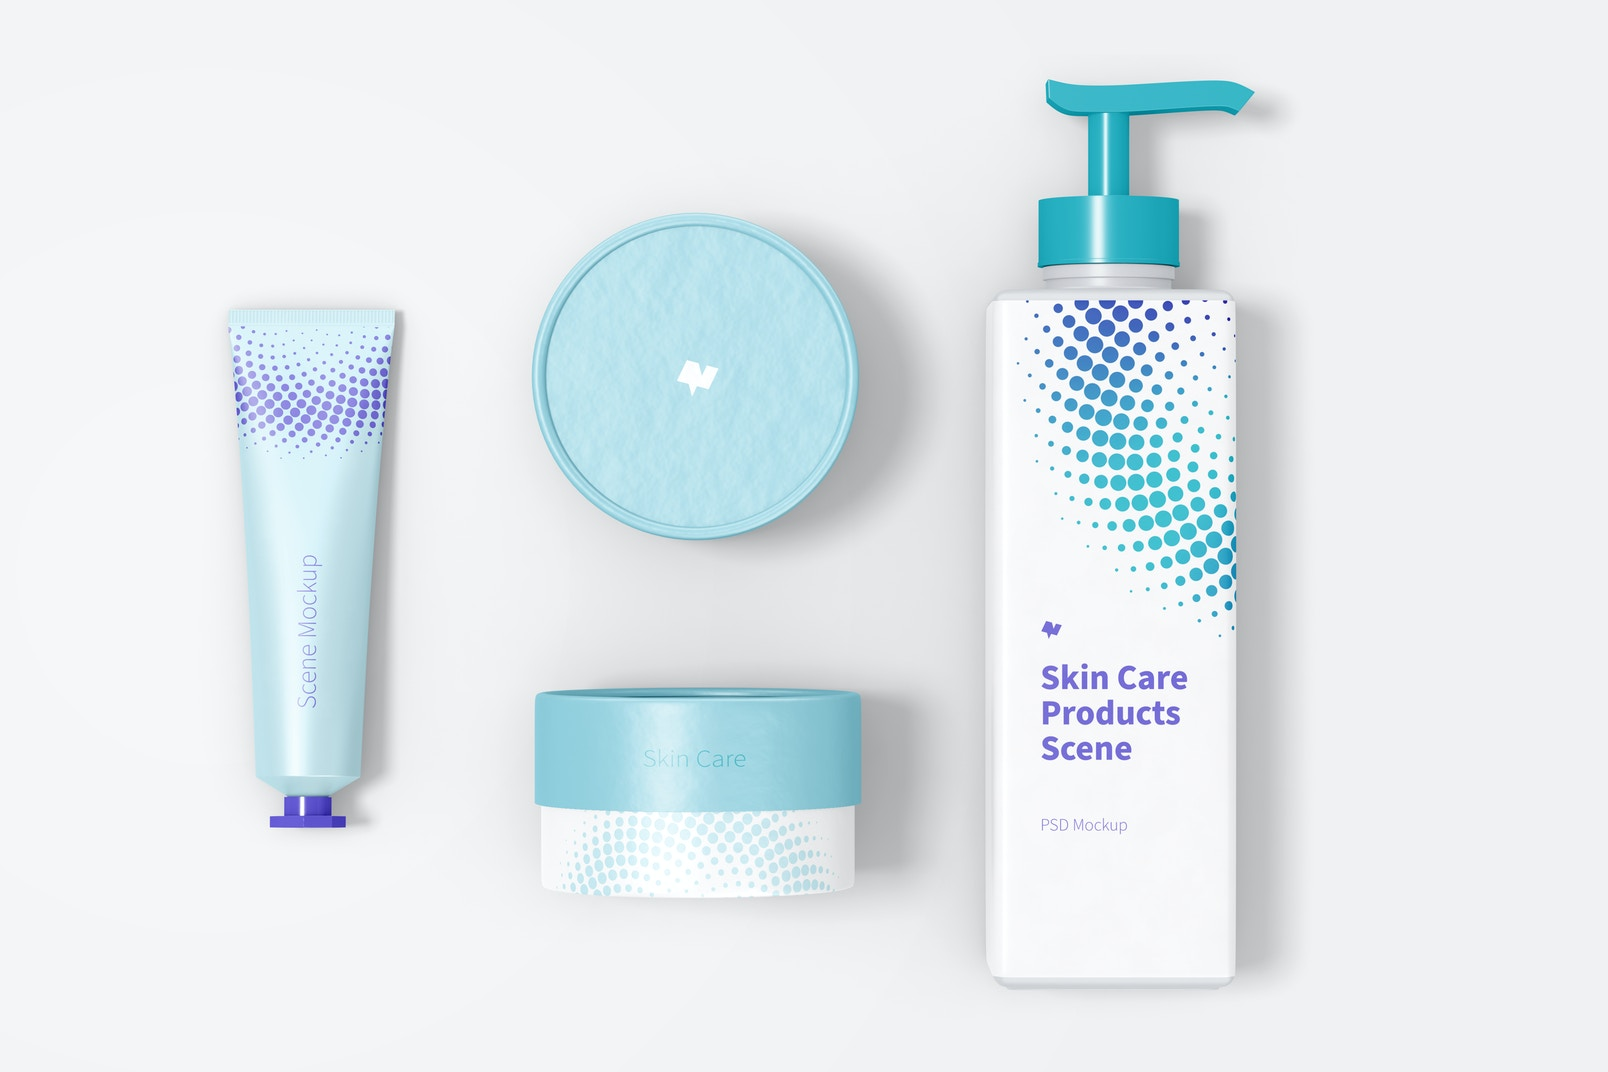 Skin Care Products Scene Mockup, Top View